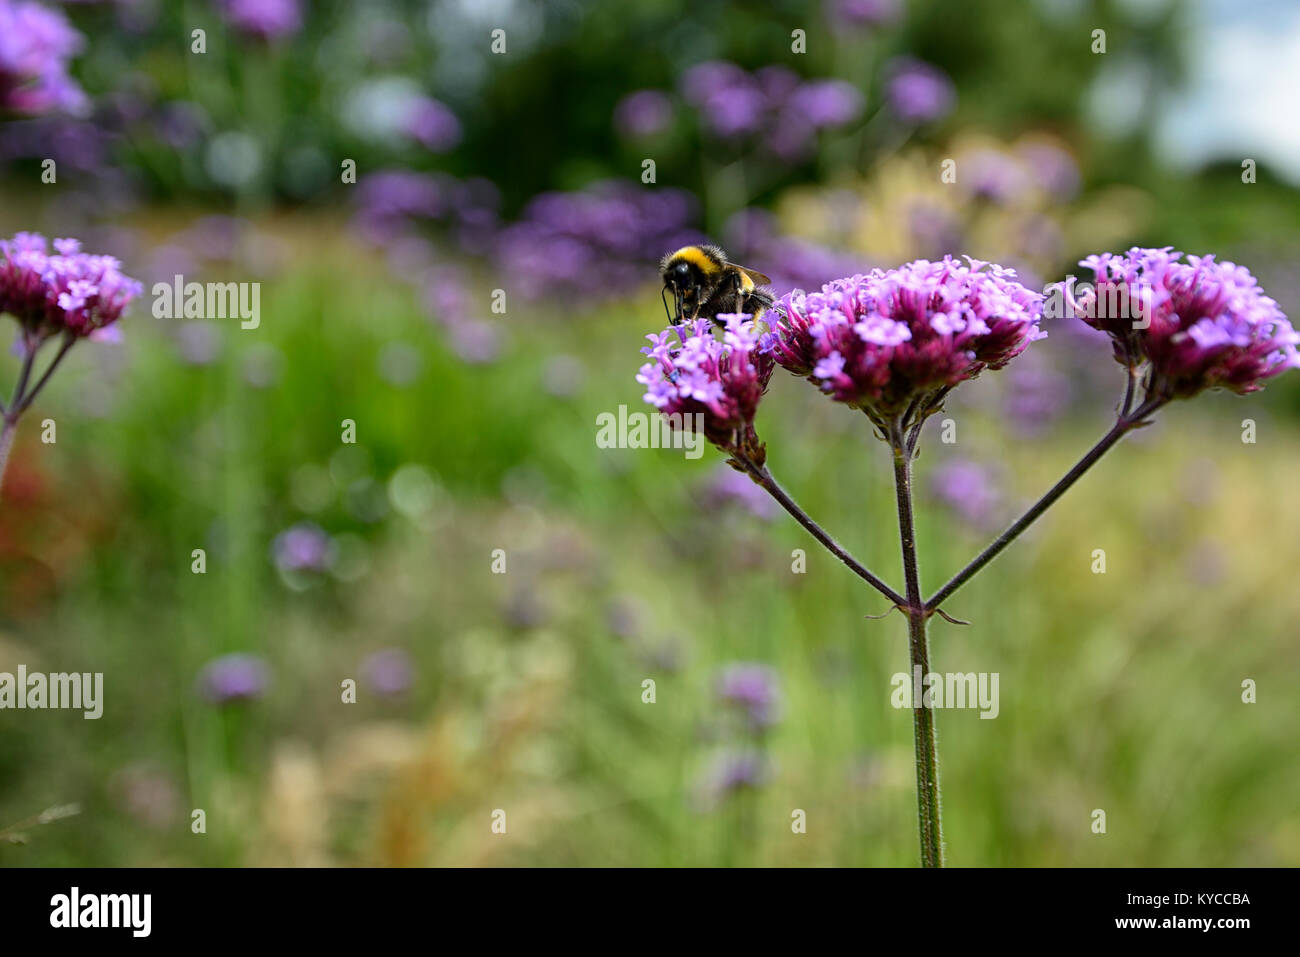 Beefeedfeedingbee friendlyverbena stock photo 171762174 alamy beefeedfeedingbee friendlyverbena bonariensistallperennialpurple flowerflowers wildlifeinsectfriendlyplantingrm floral mightylinksfo